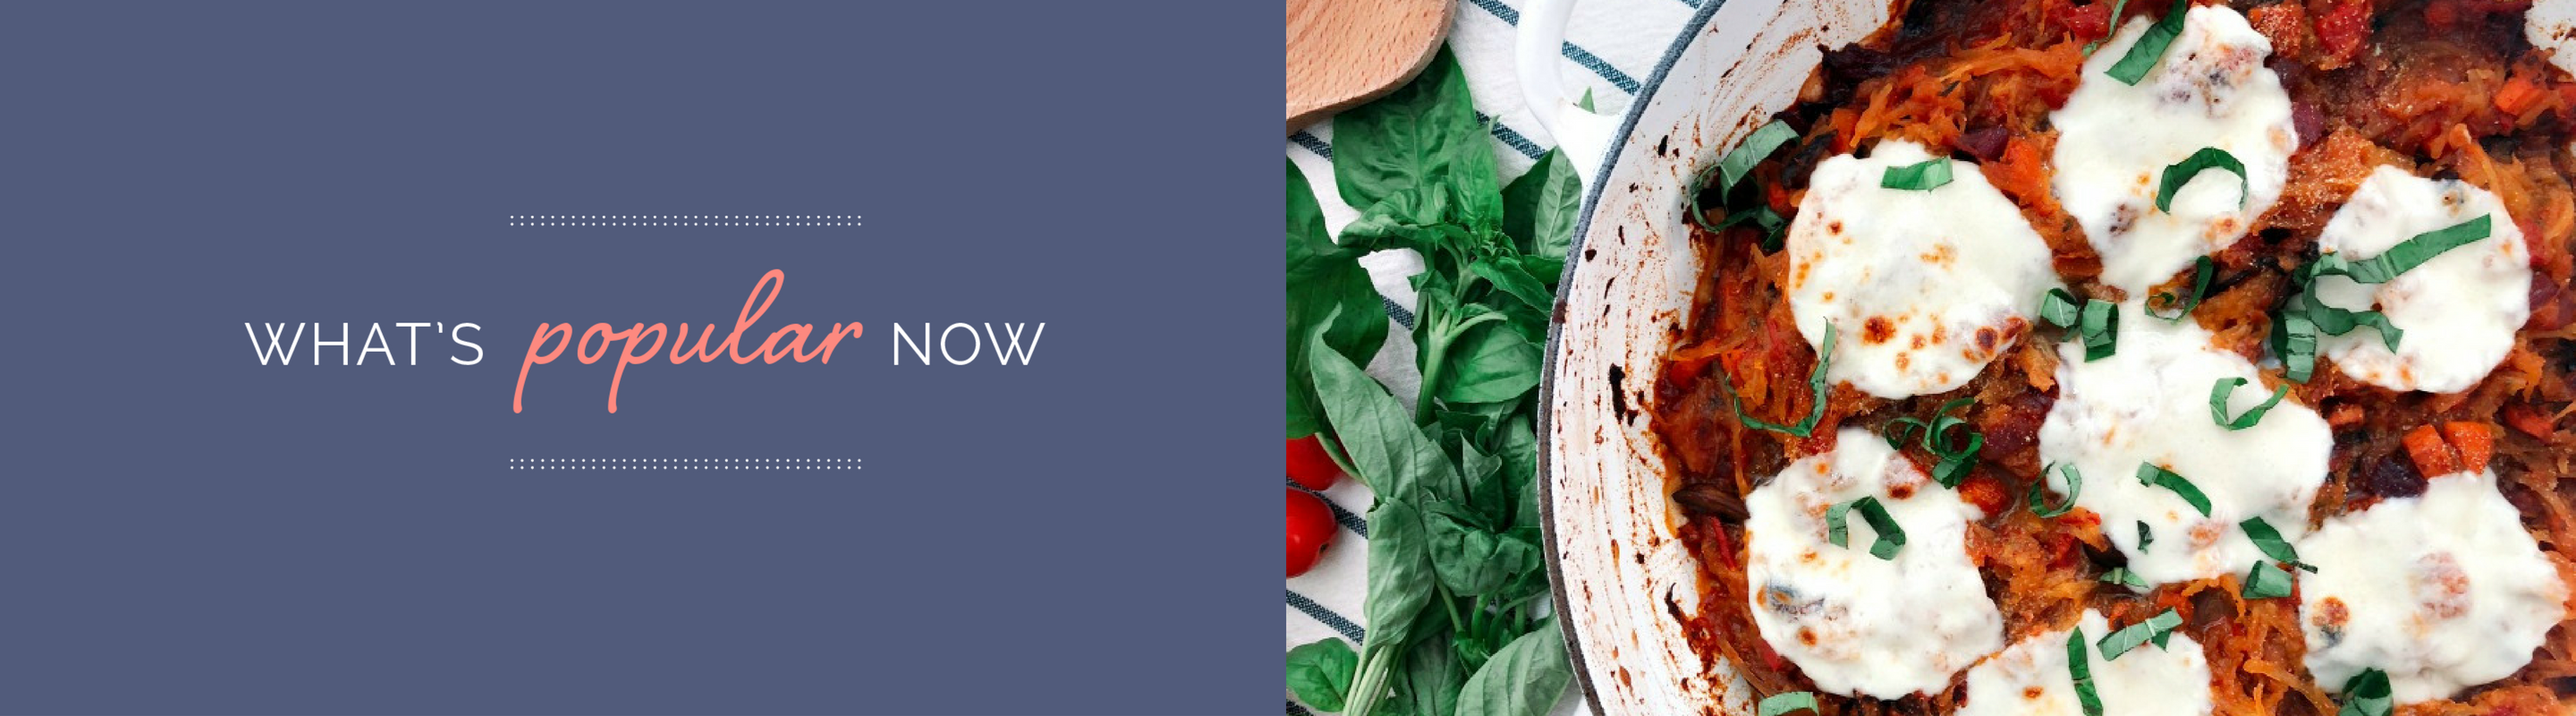 What's Pop Now Banner – spaghetti squash bake